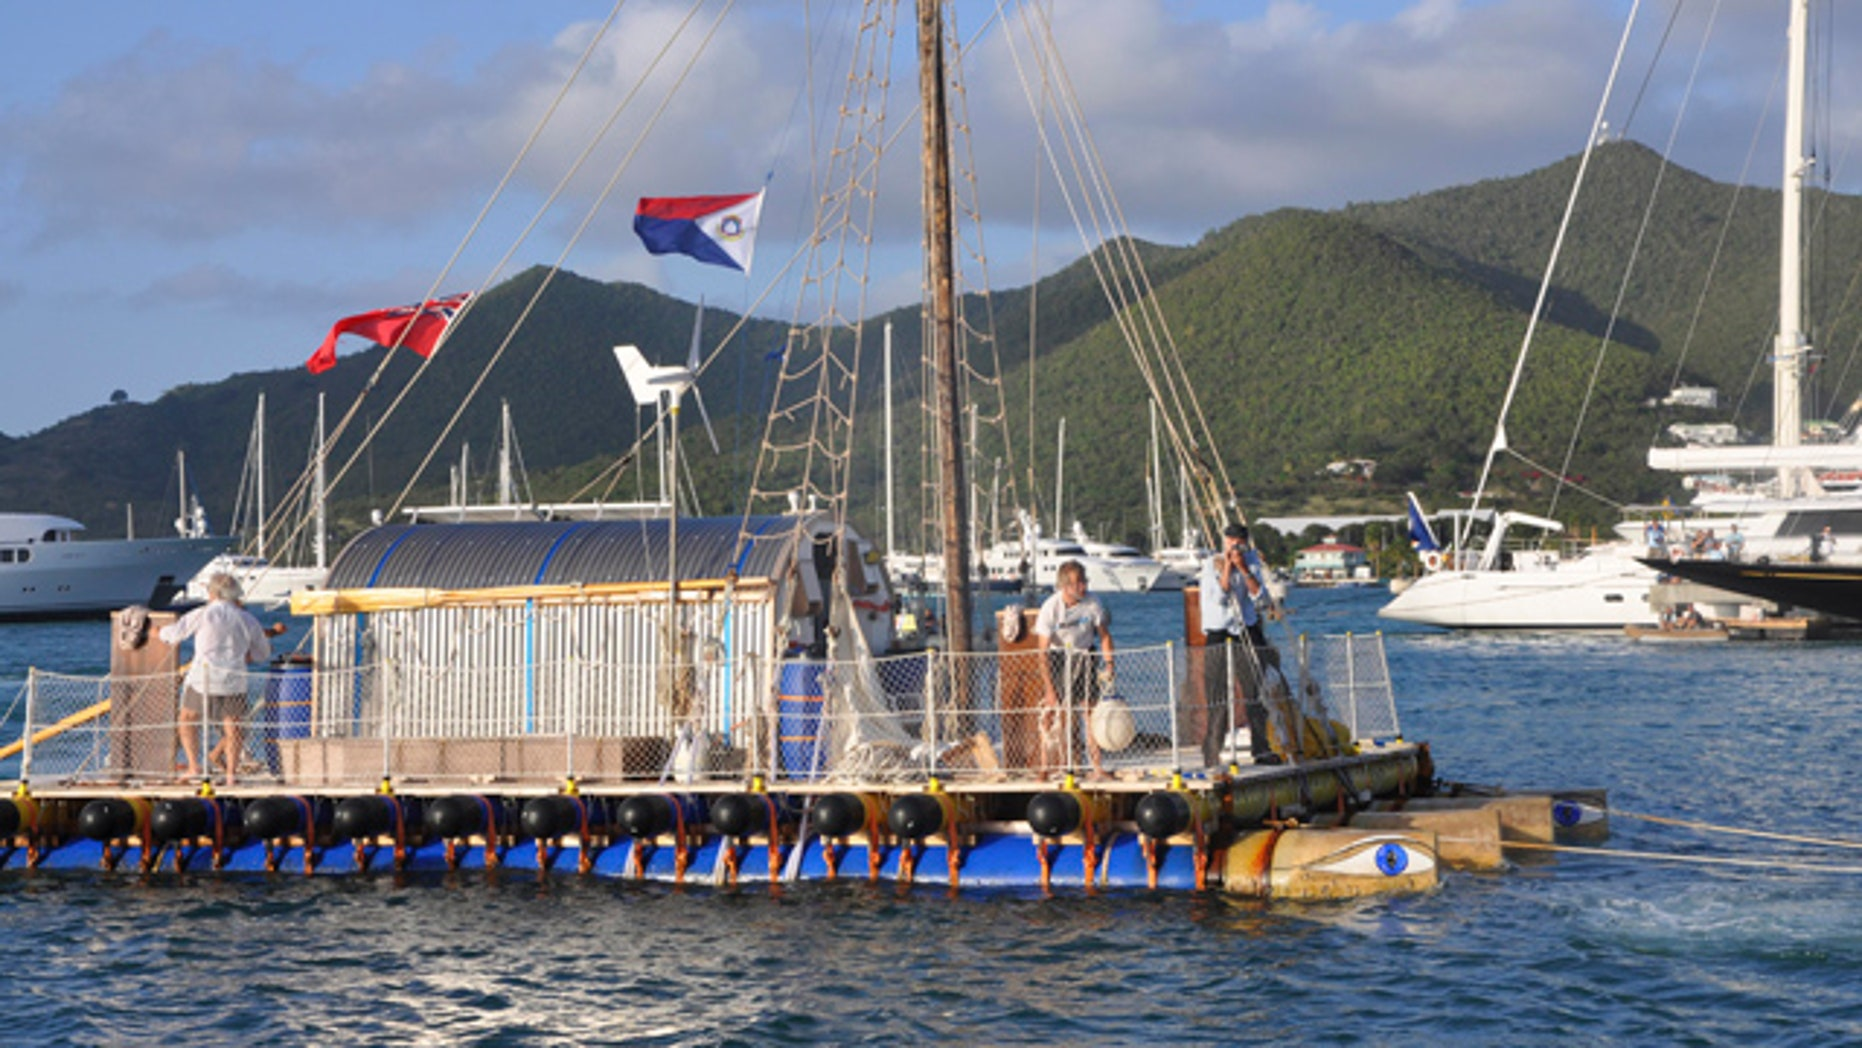 April 6: Eighty five-year-old British sailor Anthony Smith, right, captains the An-Tiki, a 40-foot sail-powered raft, as he and crew complete their roughly two month, transatlantic voyage, arriving into Philipsburg, St. Maarten.